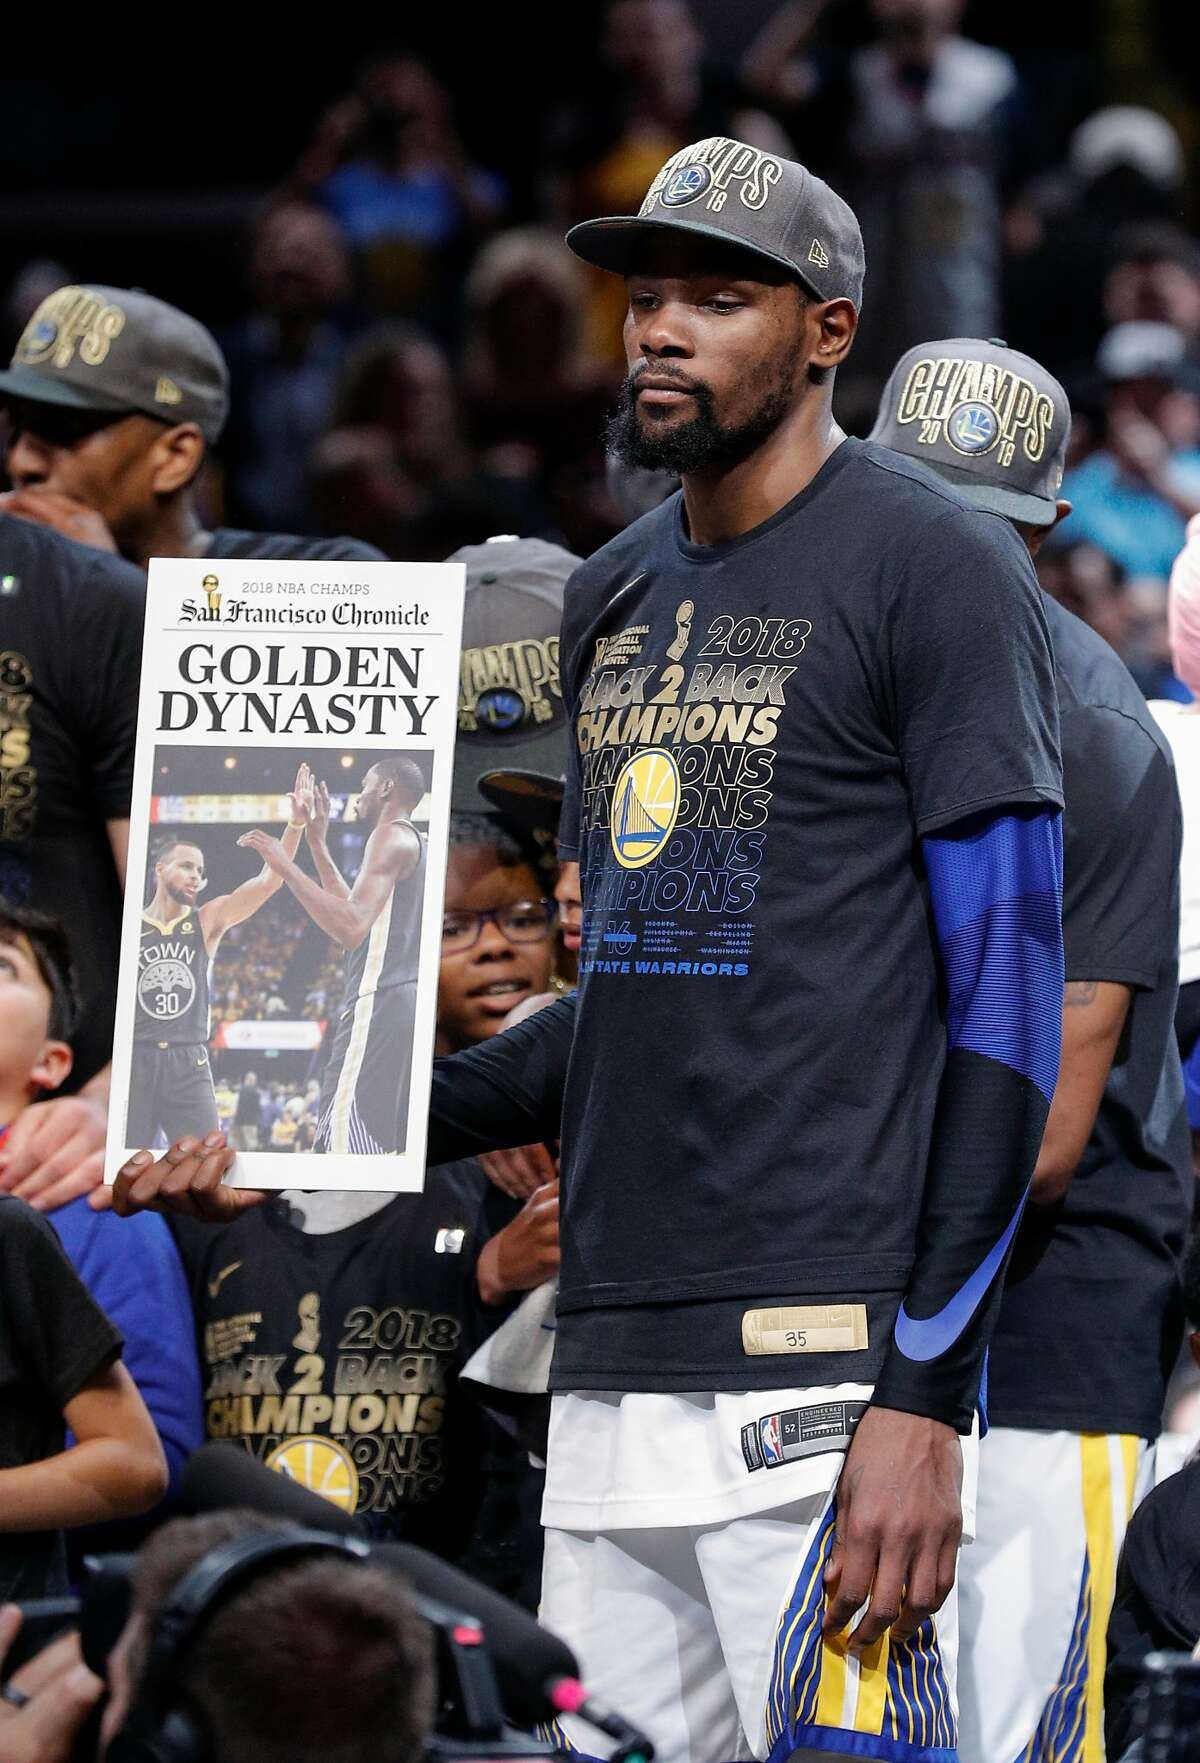 The Golden State Warriors' Kevin Durant holds up a Chronicle front page after their 108 to 85 victory over the Cleveland Cavaliers in game 4 of The NBA Finals between the Golden State Warriors and the Cleveland Cavaliers at Oracle Arena on Friday, June 8, 2018 in Cleveland, Ohio.